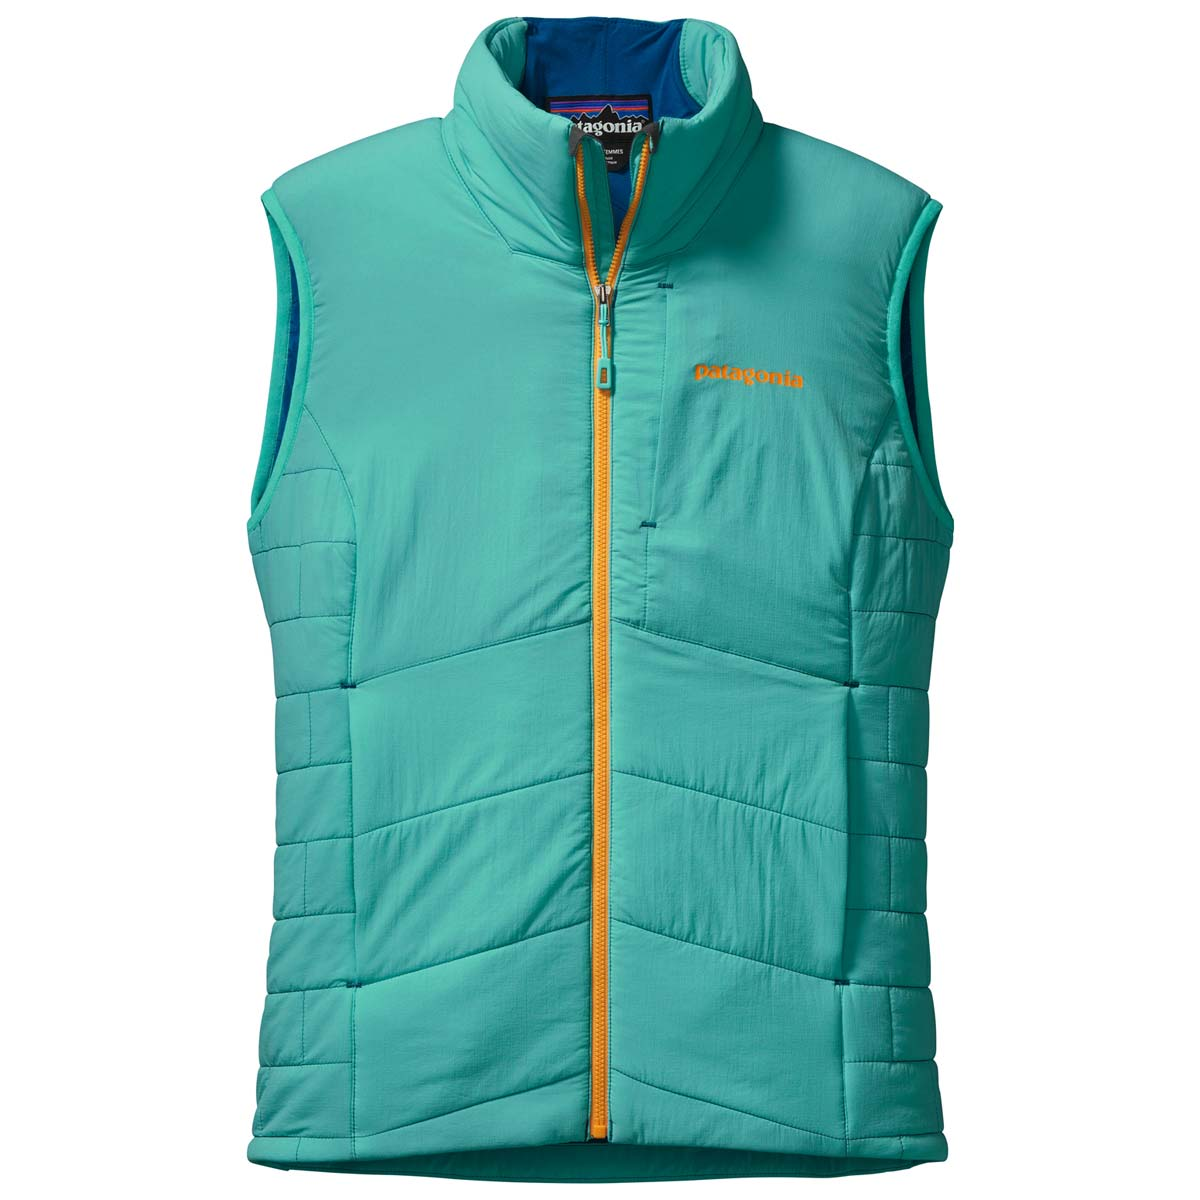 Patagonia Women S Nano Air Vest Jacket On Sale Powder7